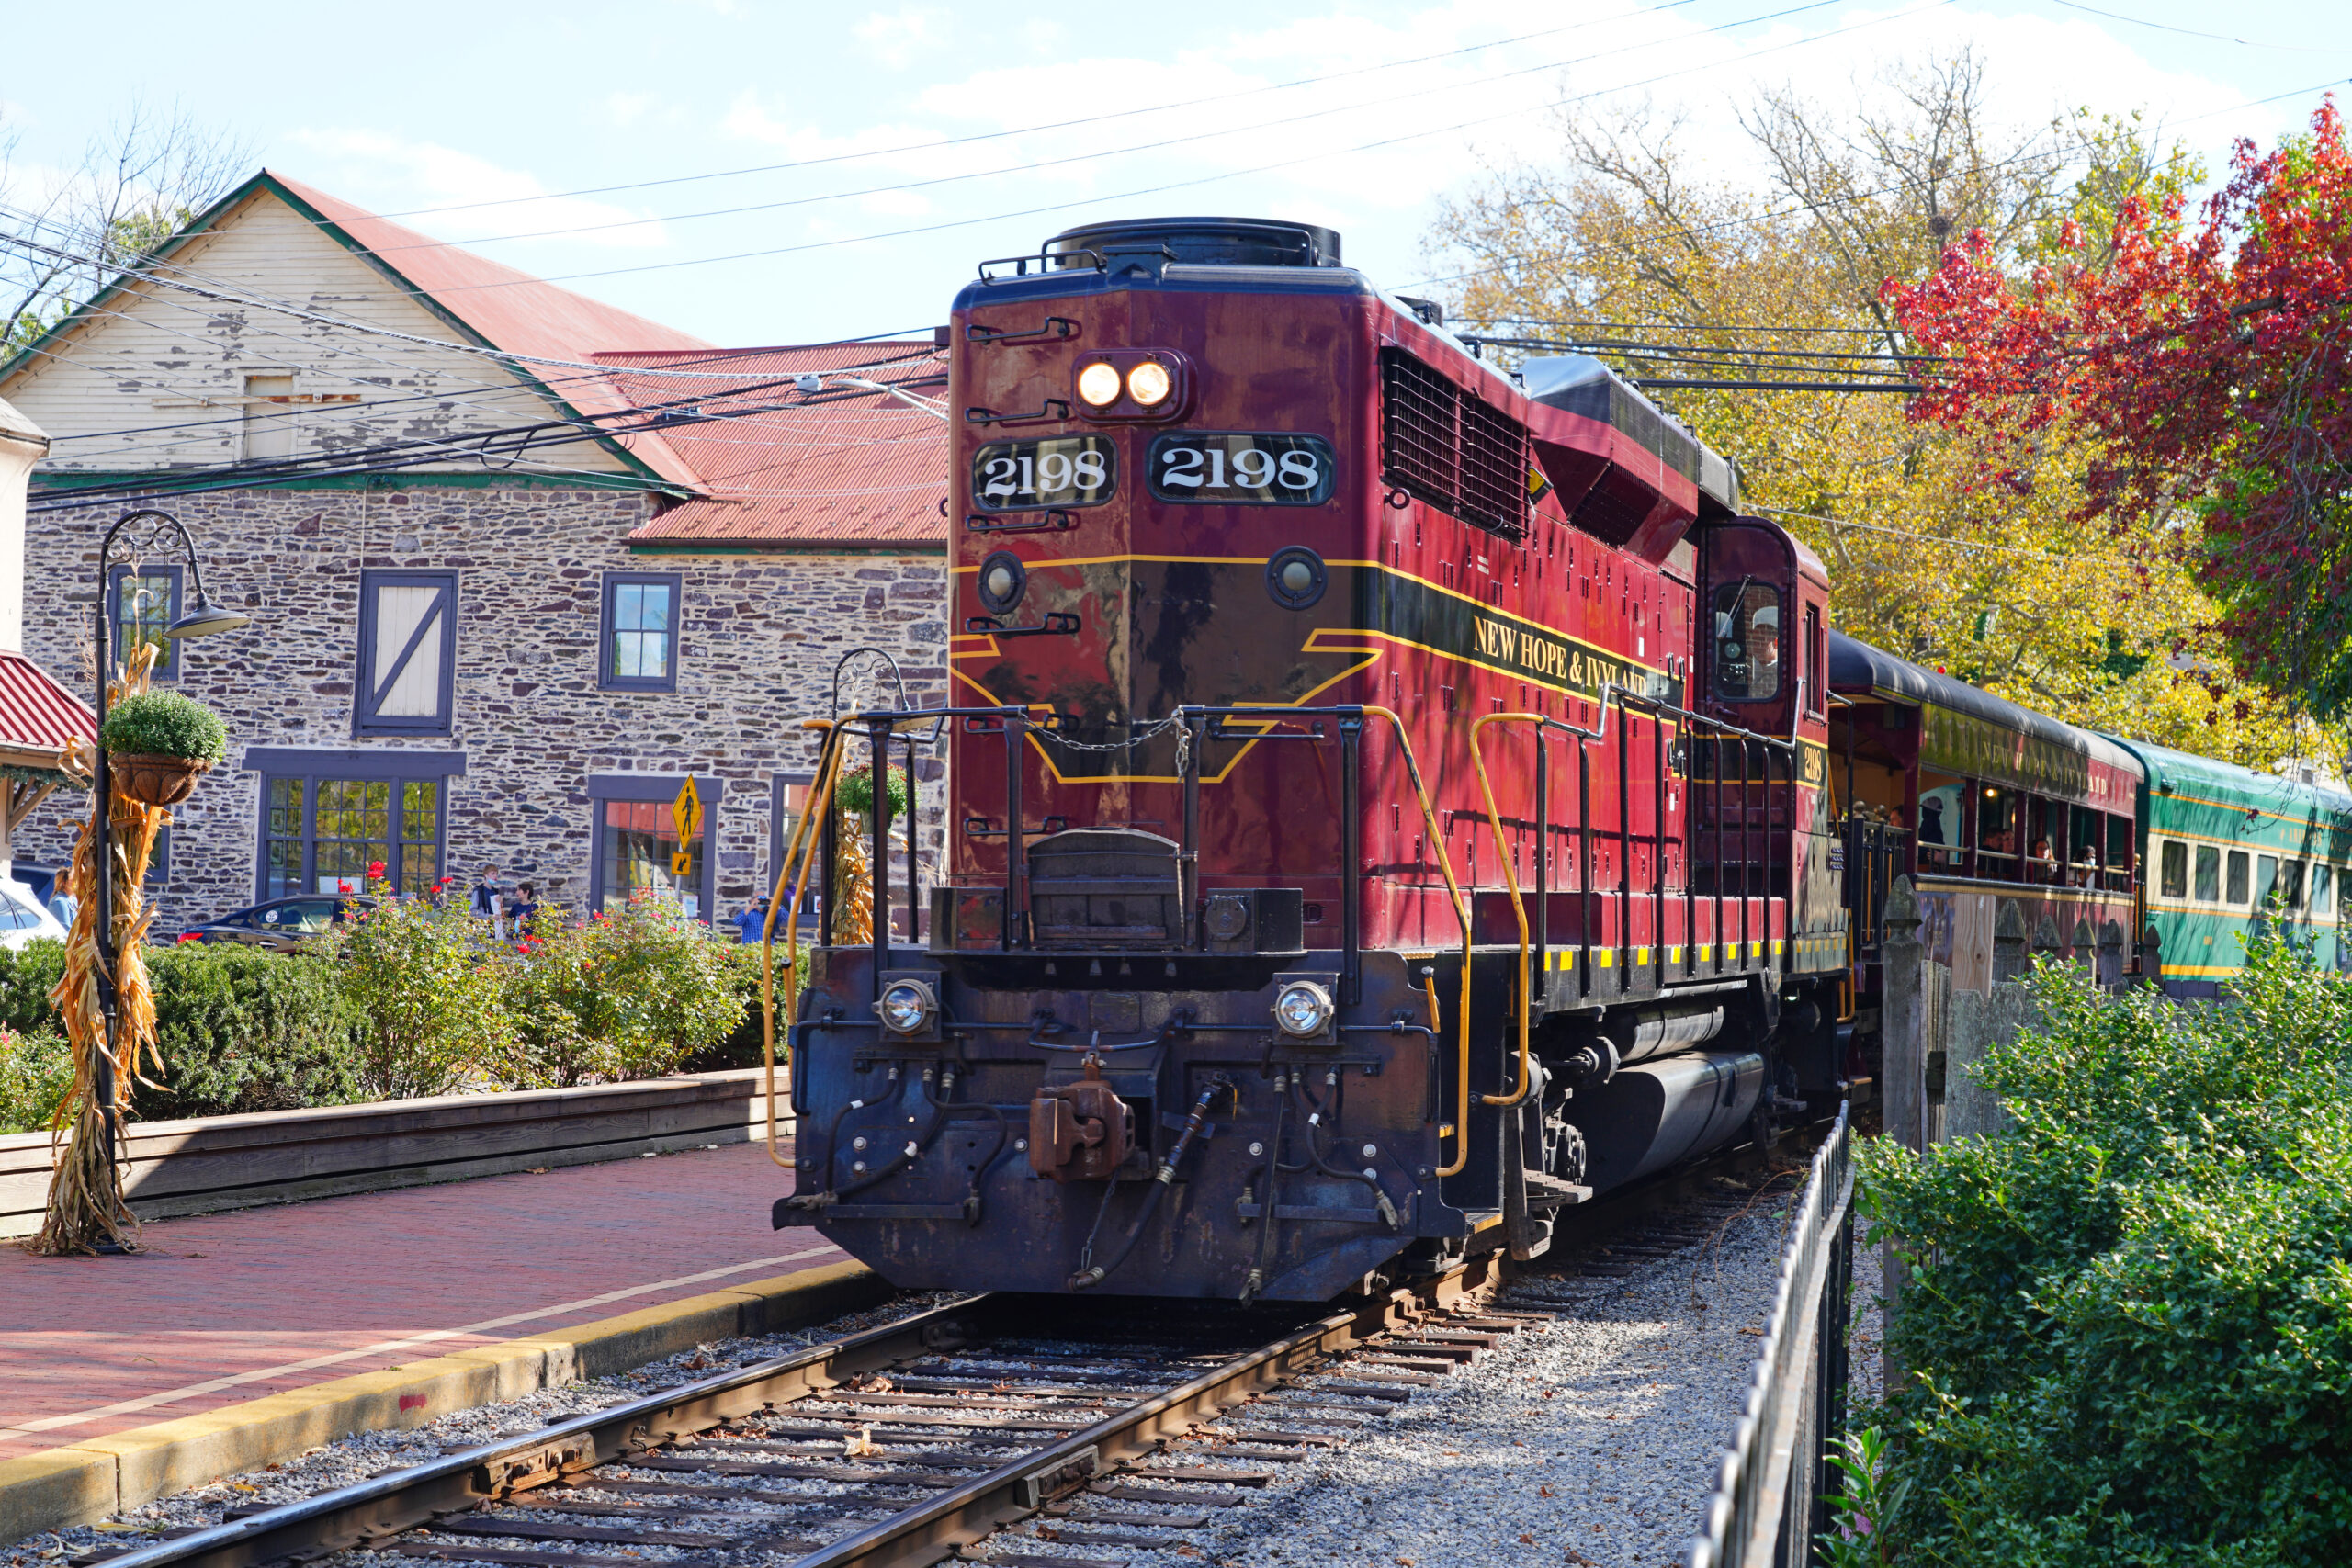 Vintage Railway Experiences and Attractions in the US